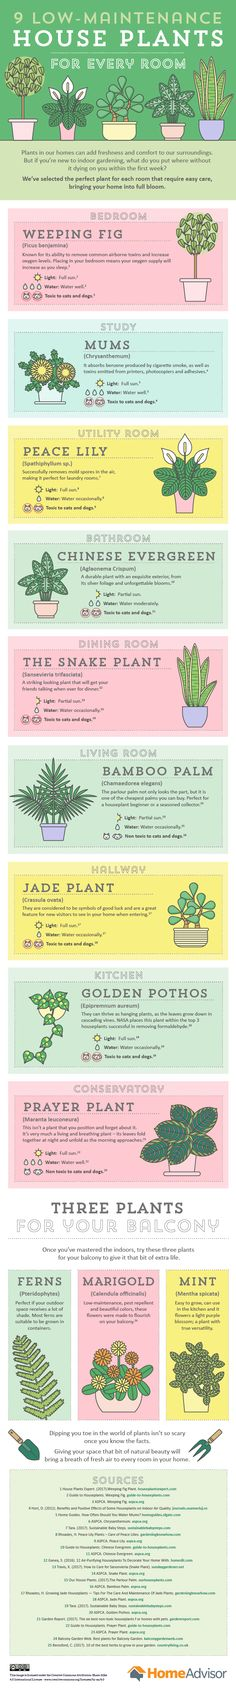 Best Plant To Buy For Every Room In Your Home Find the best low-maintenance plant for every room of the home with this handy guide.Find the best low-maintenance plant for every room of the home with this handy guide.